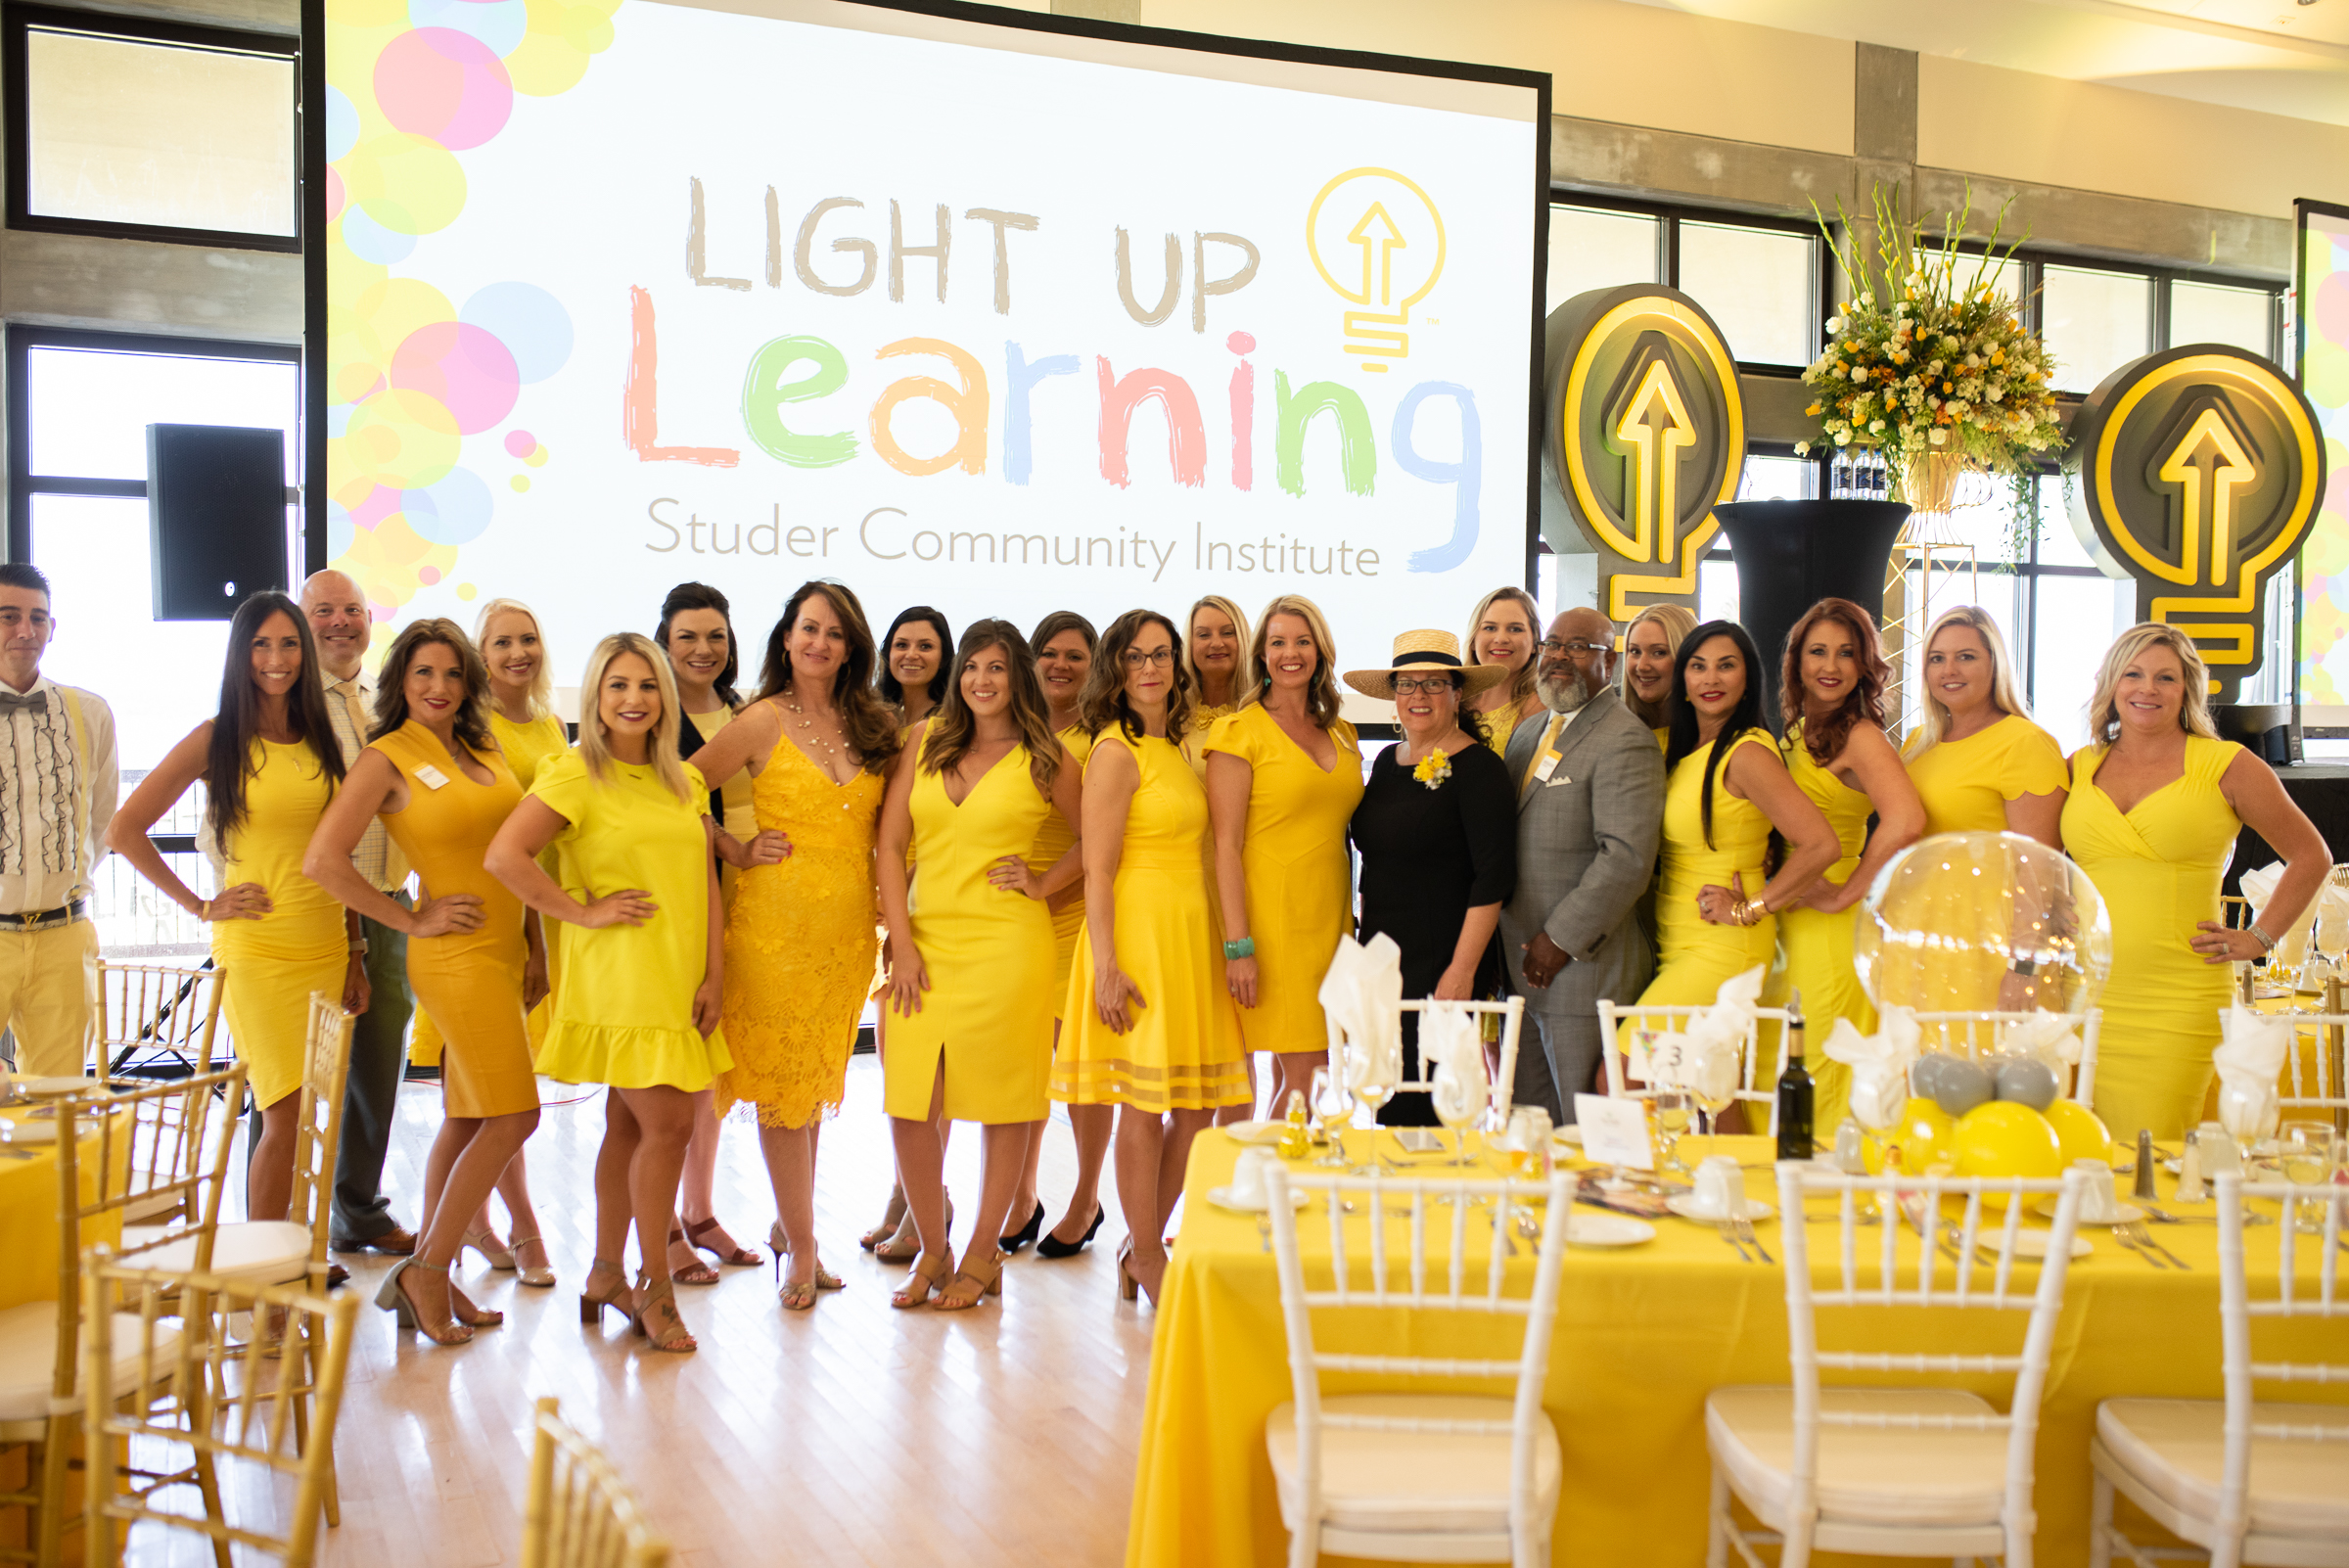 Early learning staff and volunteers showcase Light Up Learning event